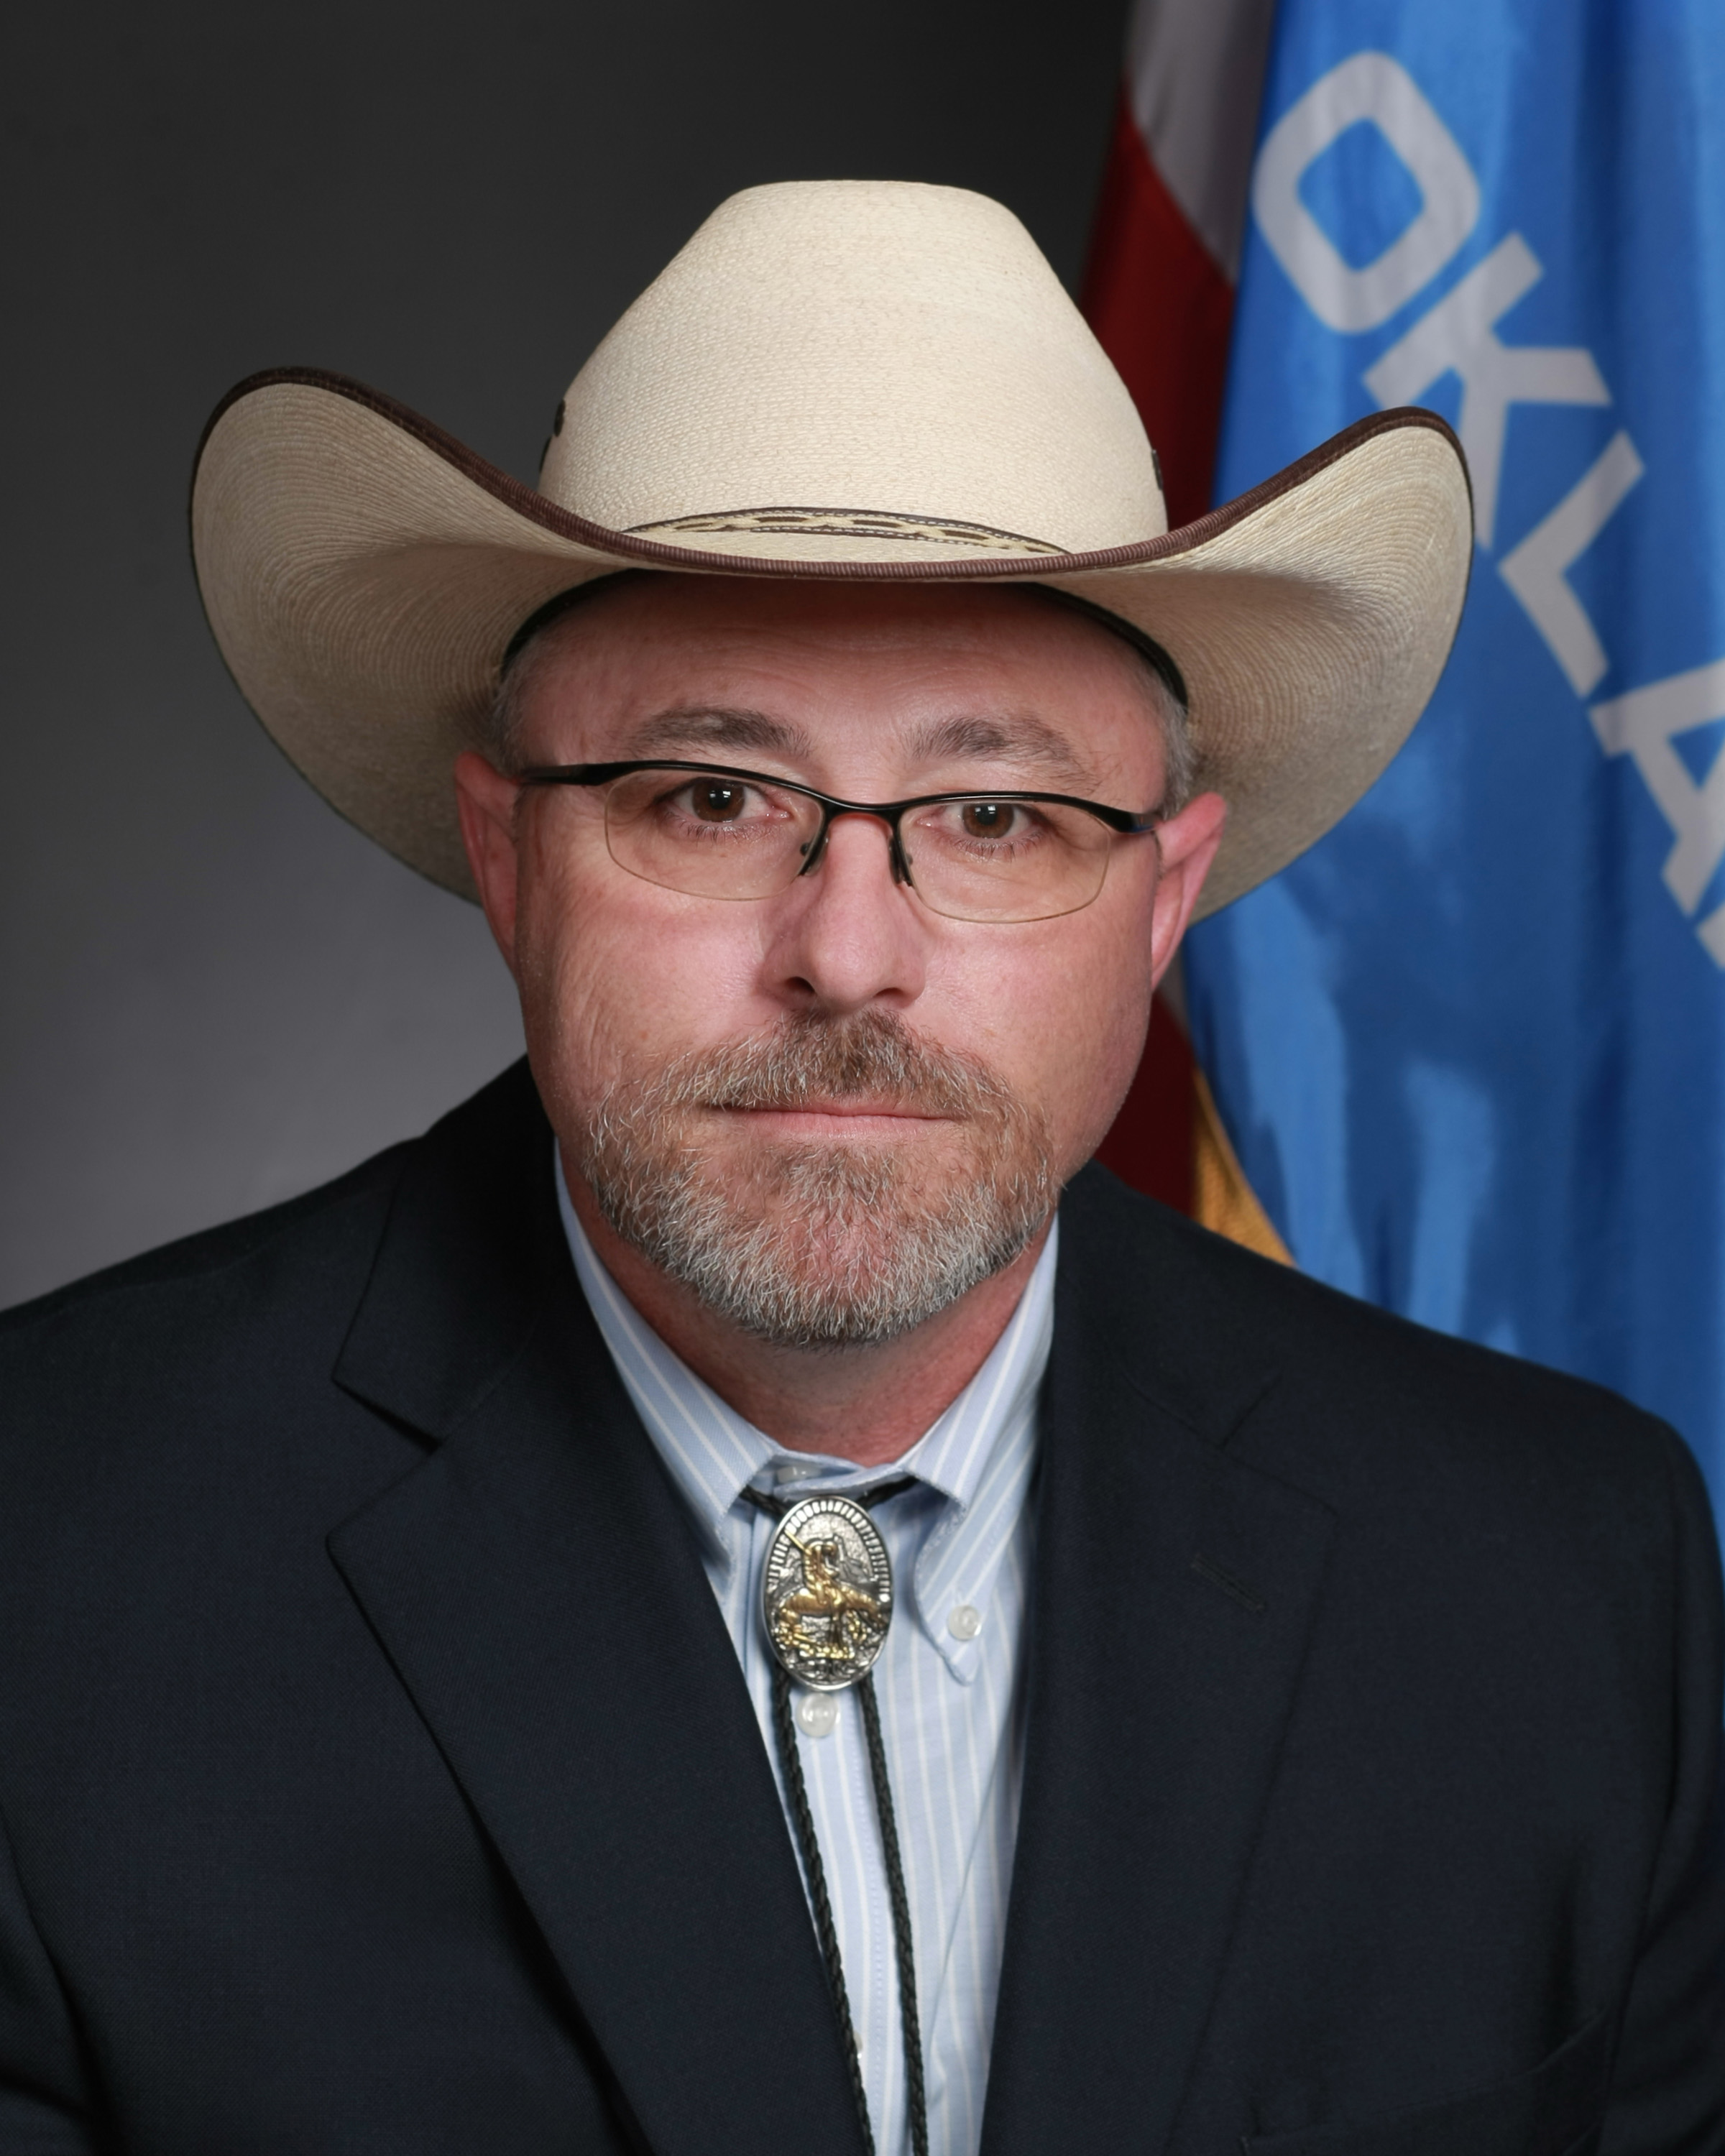 representative justin humphrey - oklahoma house of representatives